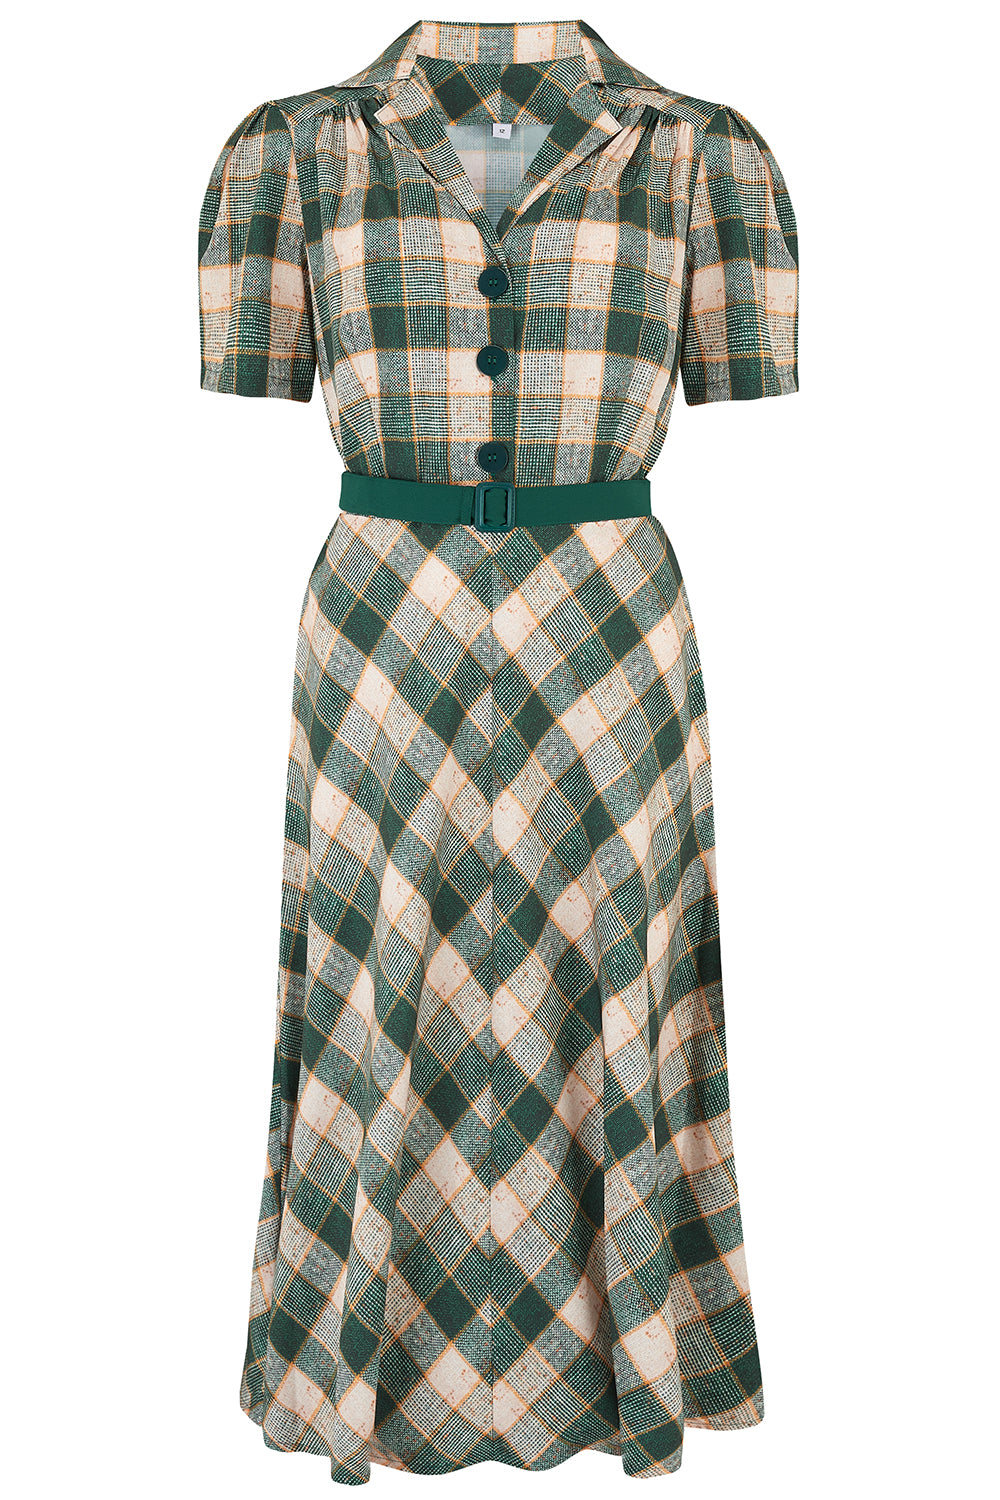 Vintage Shirtwaist Dress History Pre-Order The Lola Shirtwaister Dress in Green Check Print Perfect 1950s Authentic Vintage Style £49.00 AT vintagedancer.com